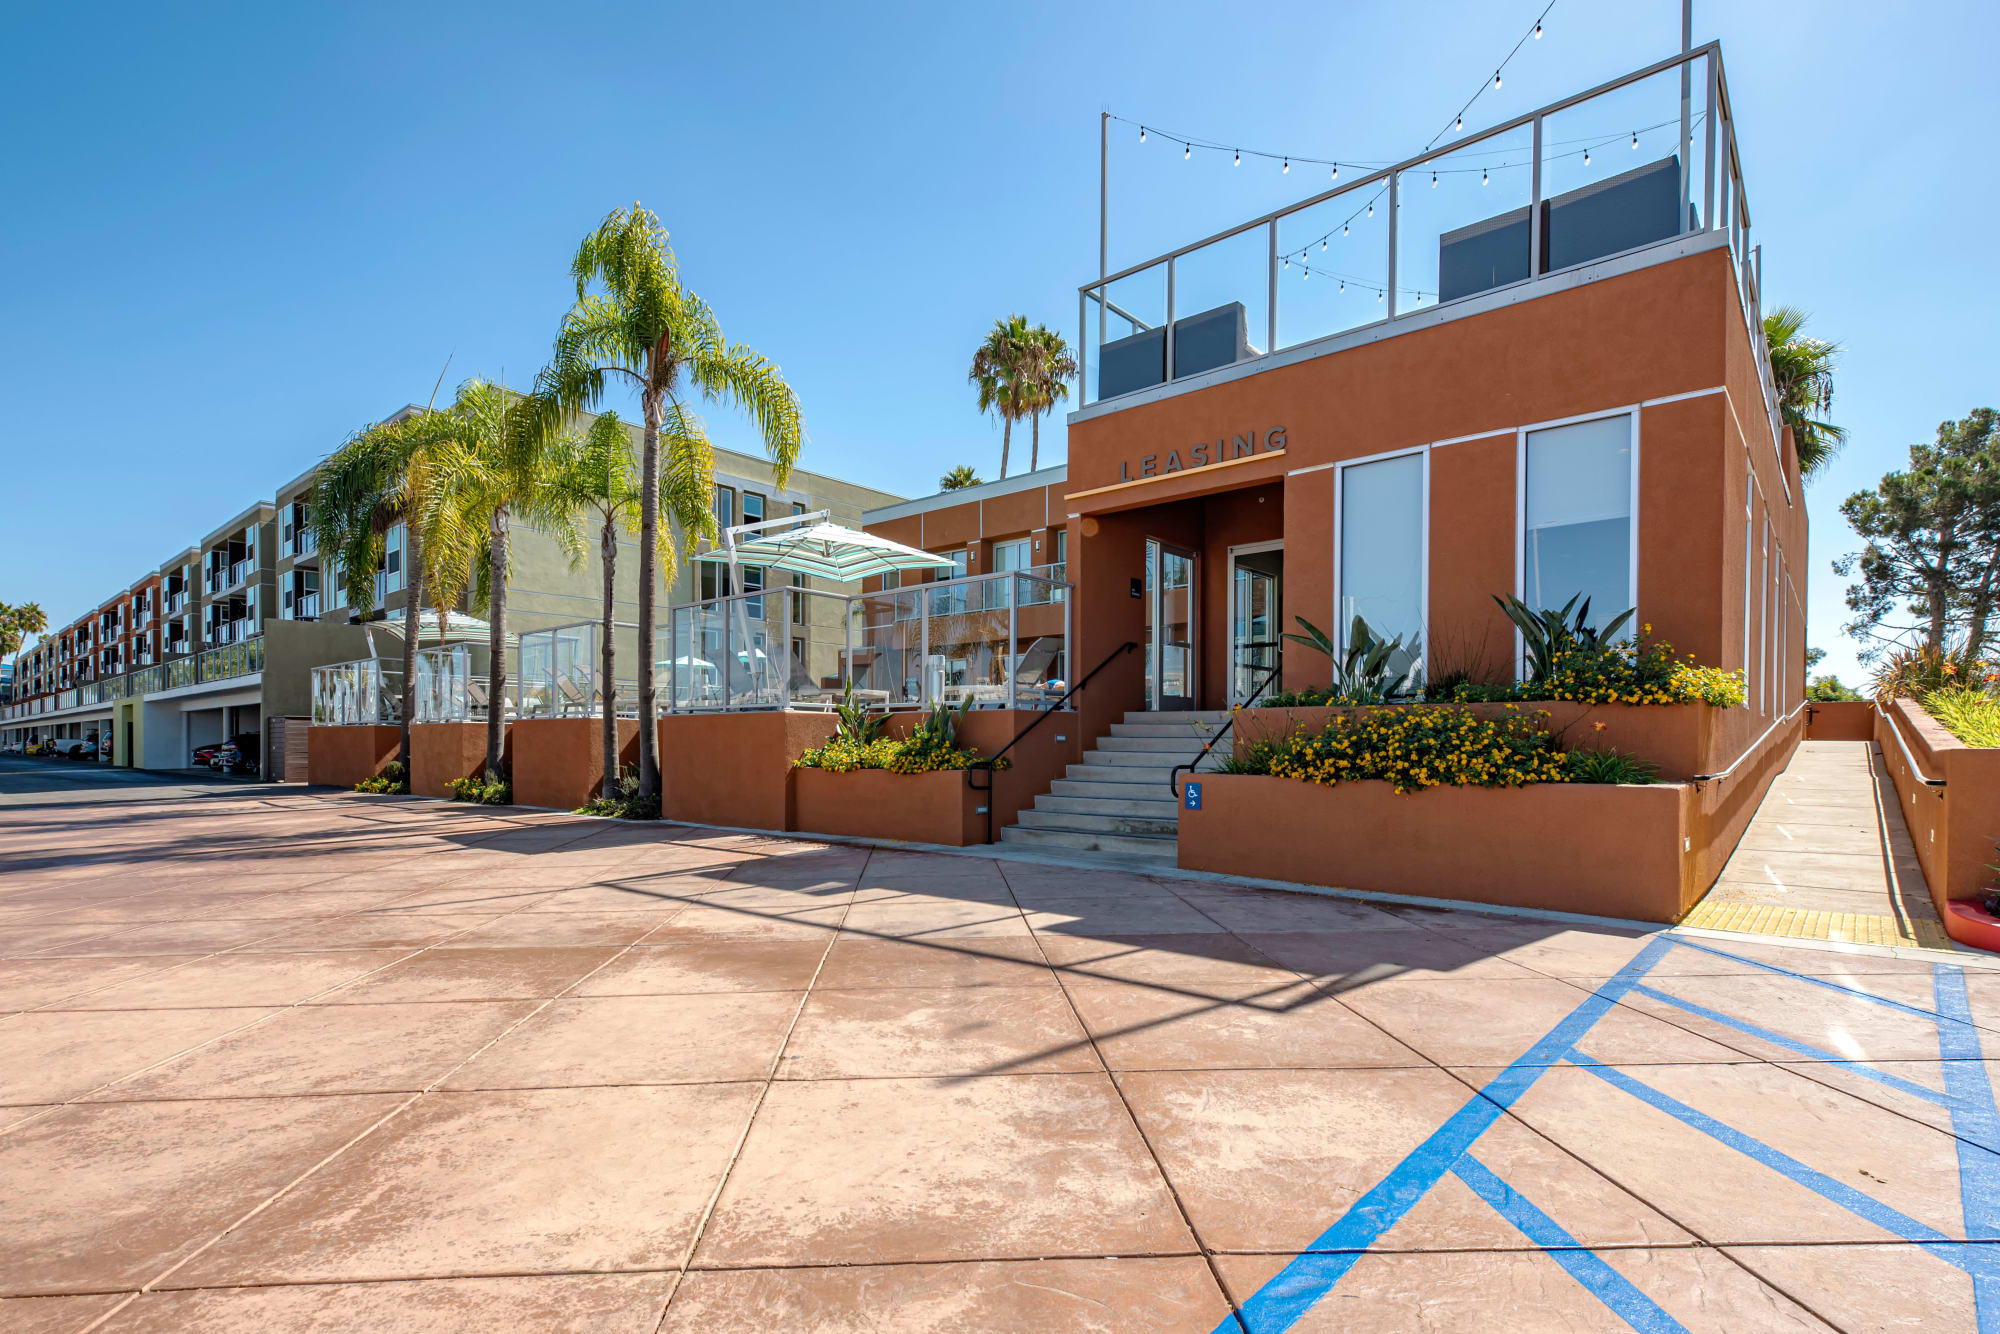 The leasing office at Harborside Marina Bay Apartments in Marina del Rey, California